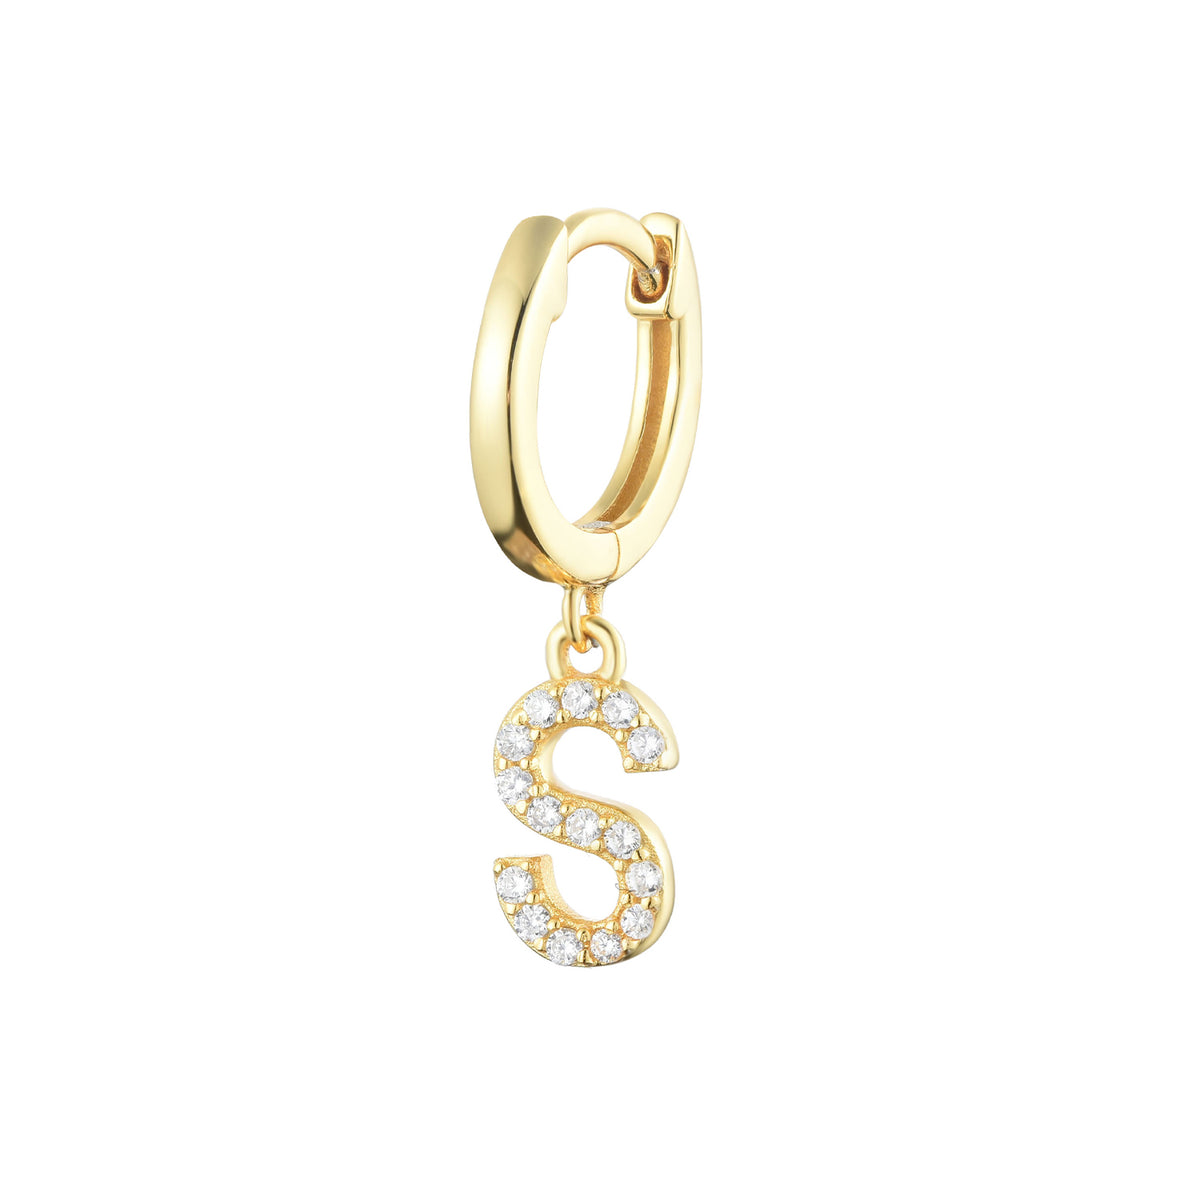 Magna | S Letter Single Earring | White CZ | 18K Gold Plated 925 Silver